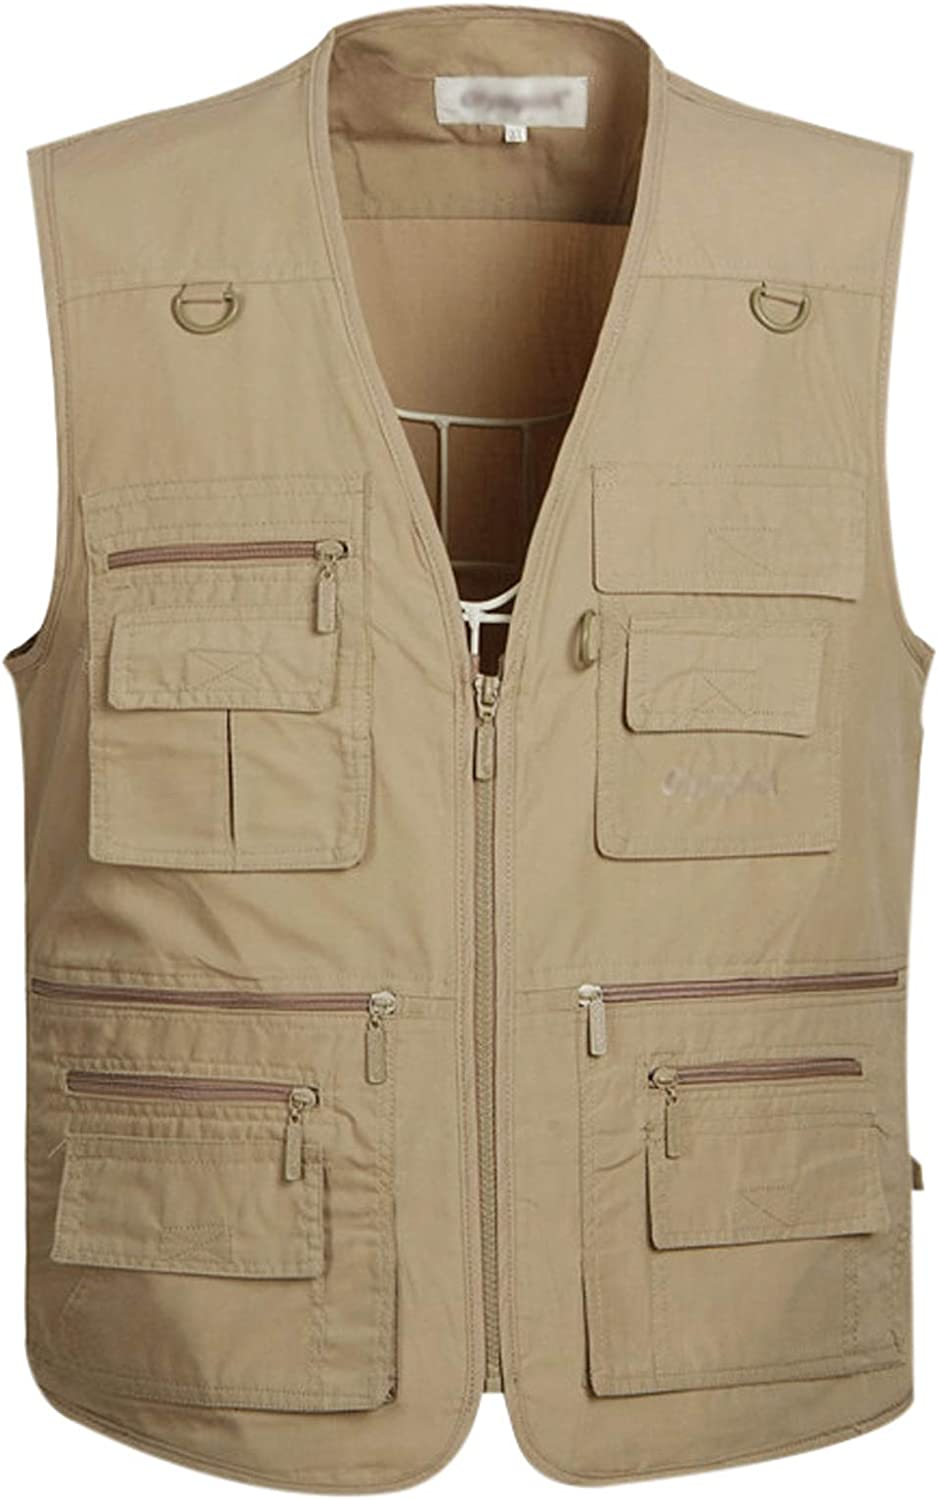 Gihuo Men's Summer Outdoor Work Safari Fishing Travel Photo Vest with Pockets